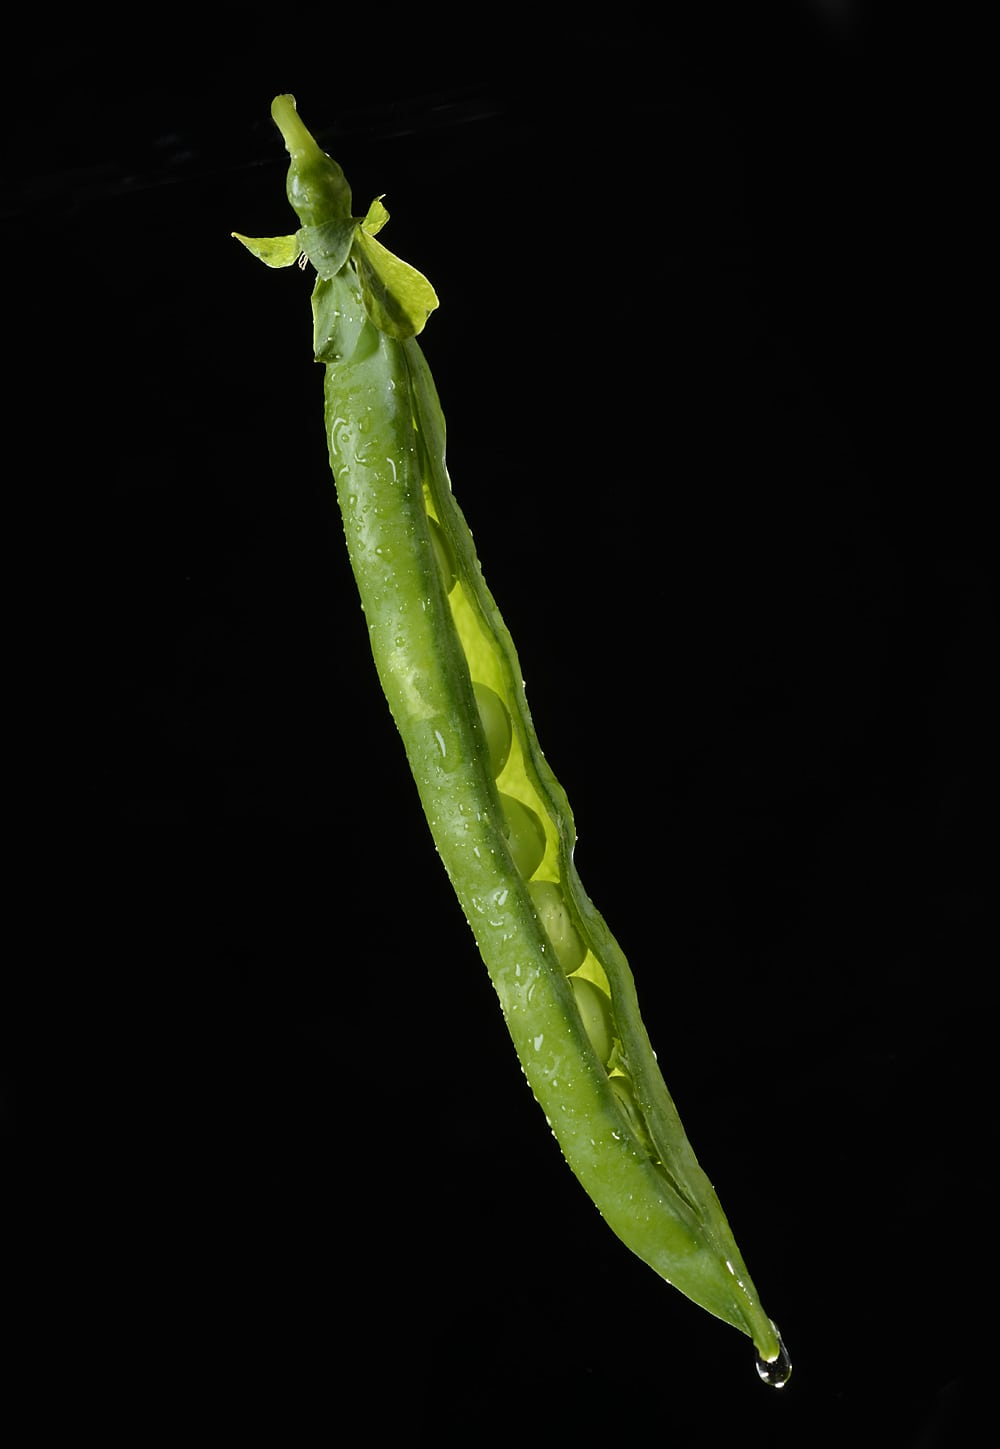 close up shot of wetted down green bean with pod split open revealing peas in side floating on black background with a water drip on the bottom end Product Photography